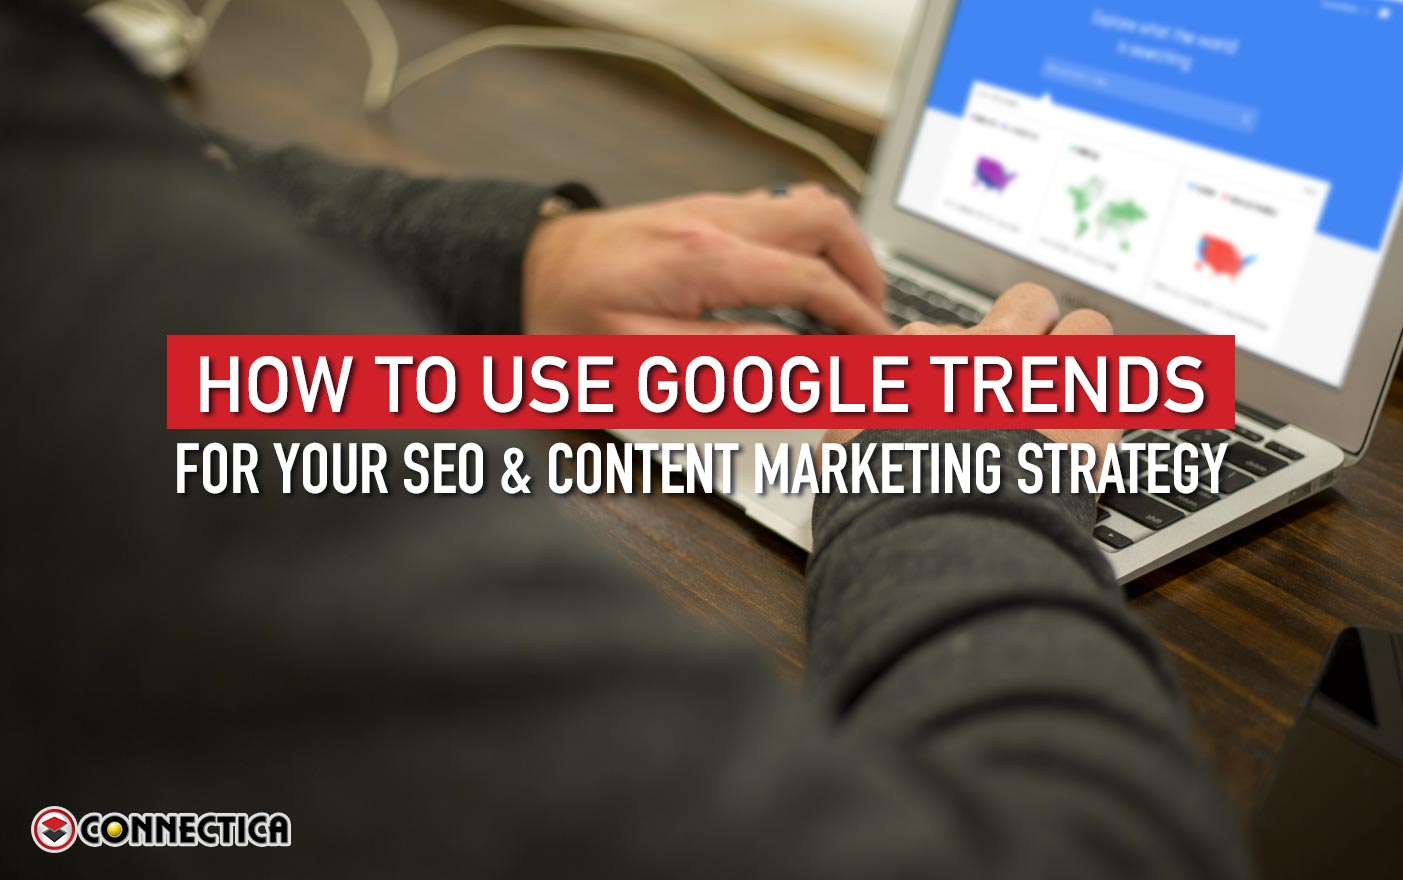 SEO & Content Marketing Strategy